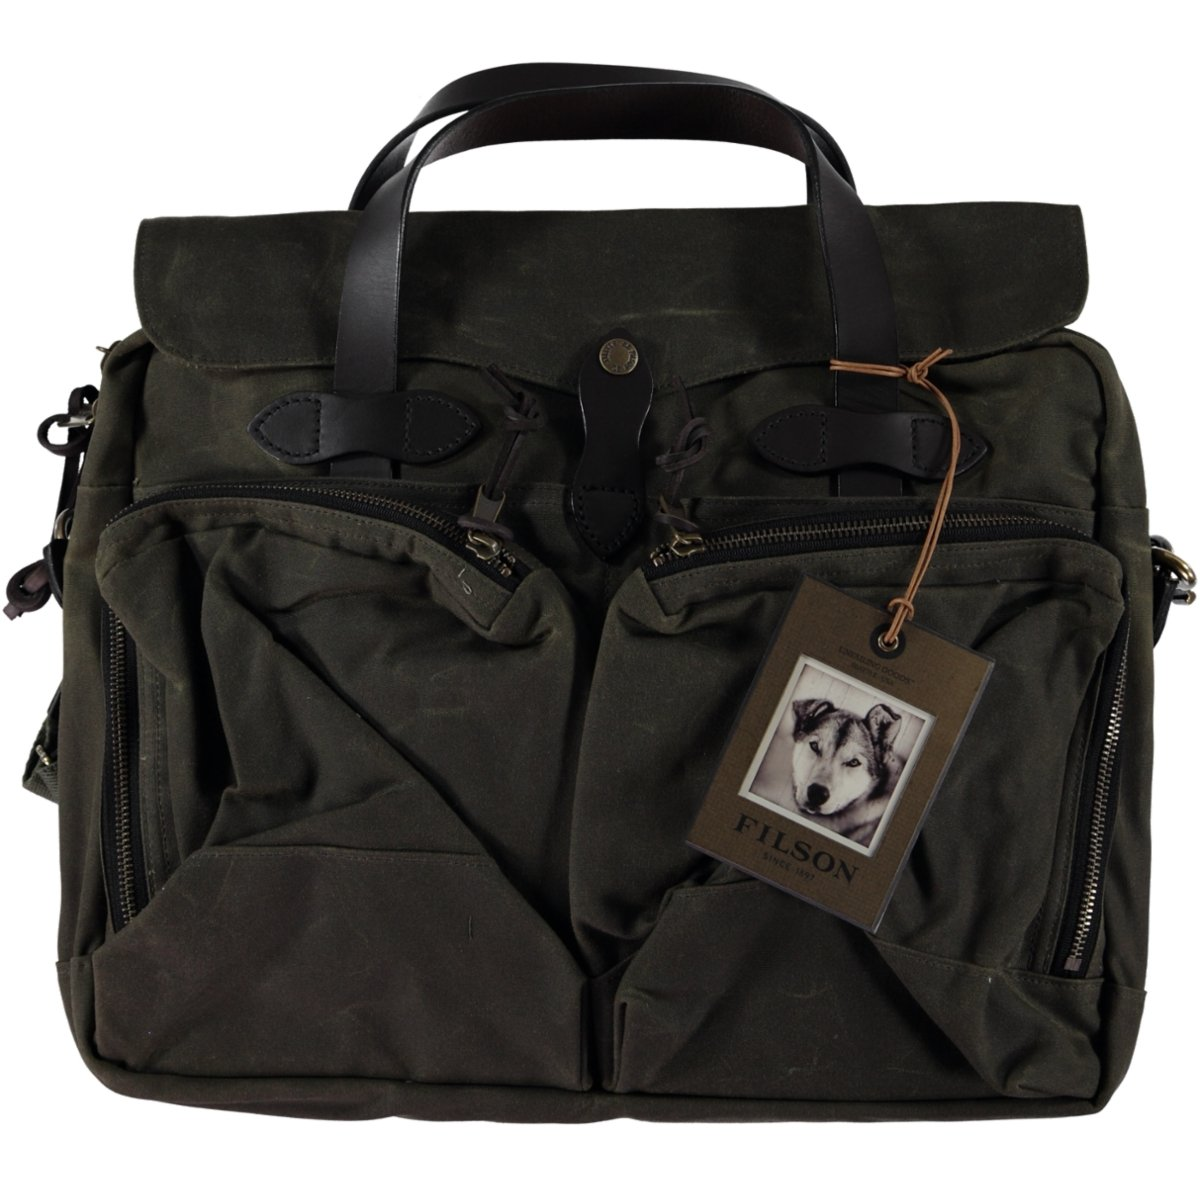 Filson Unisex 24 Hour Tin Briefcase Otter Green Briefcase by Filson